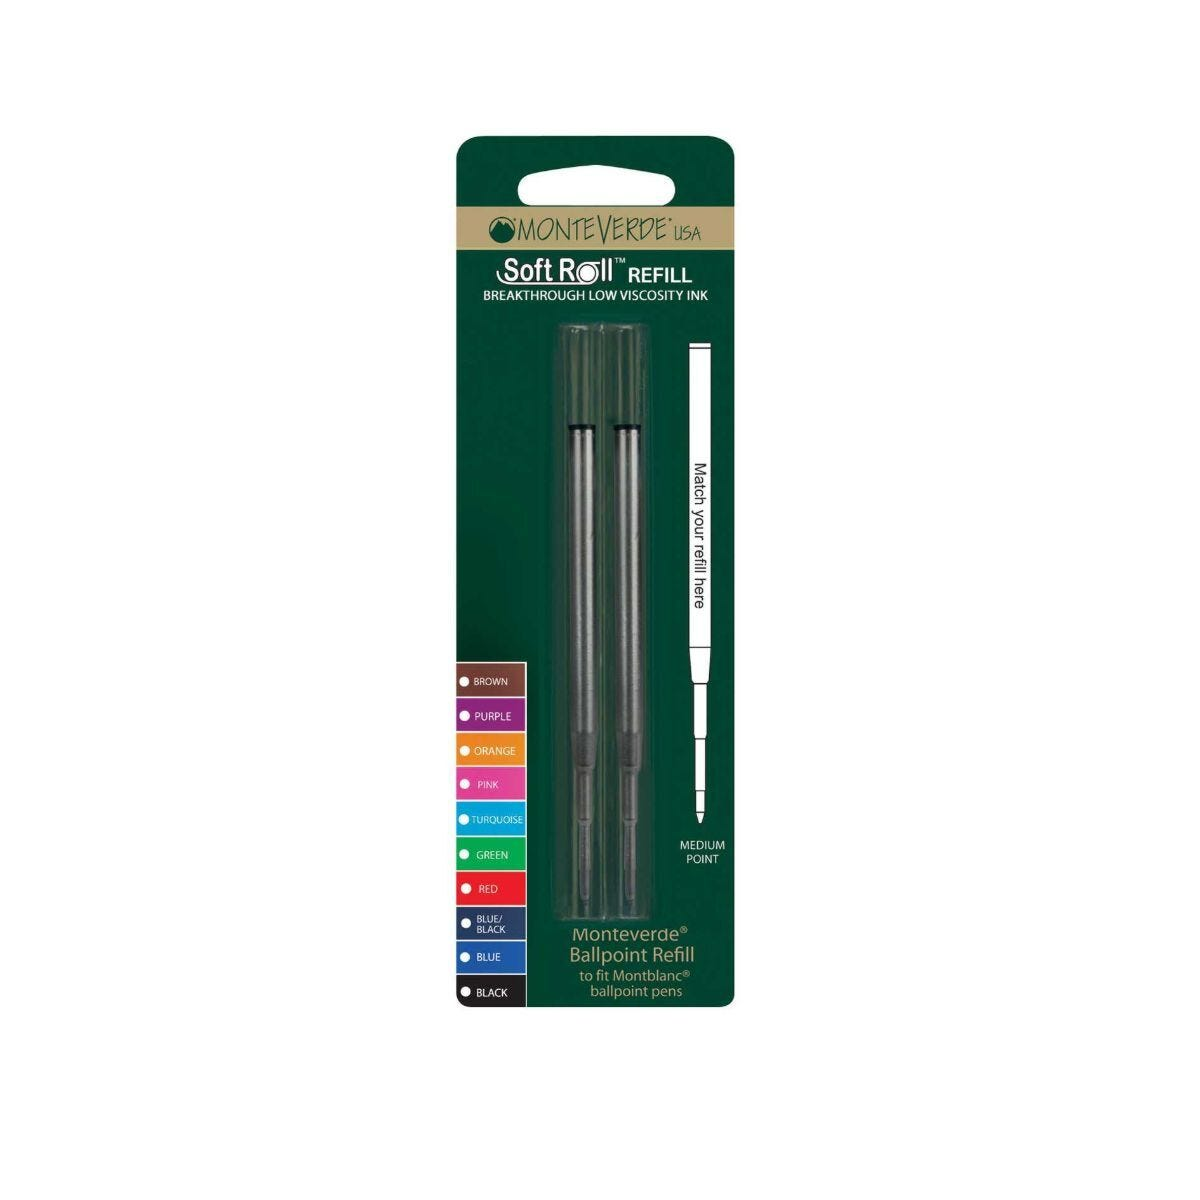 Ballpoint Medium Refill to fit Montblanc 2 Pack Blue